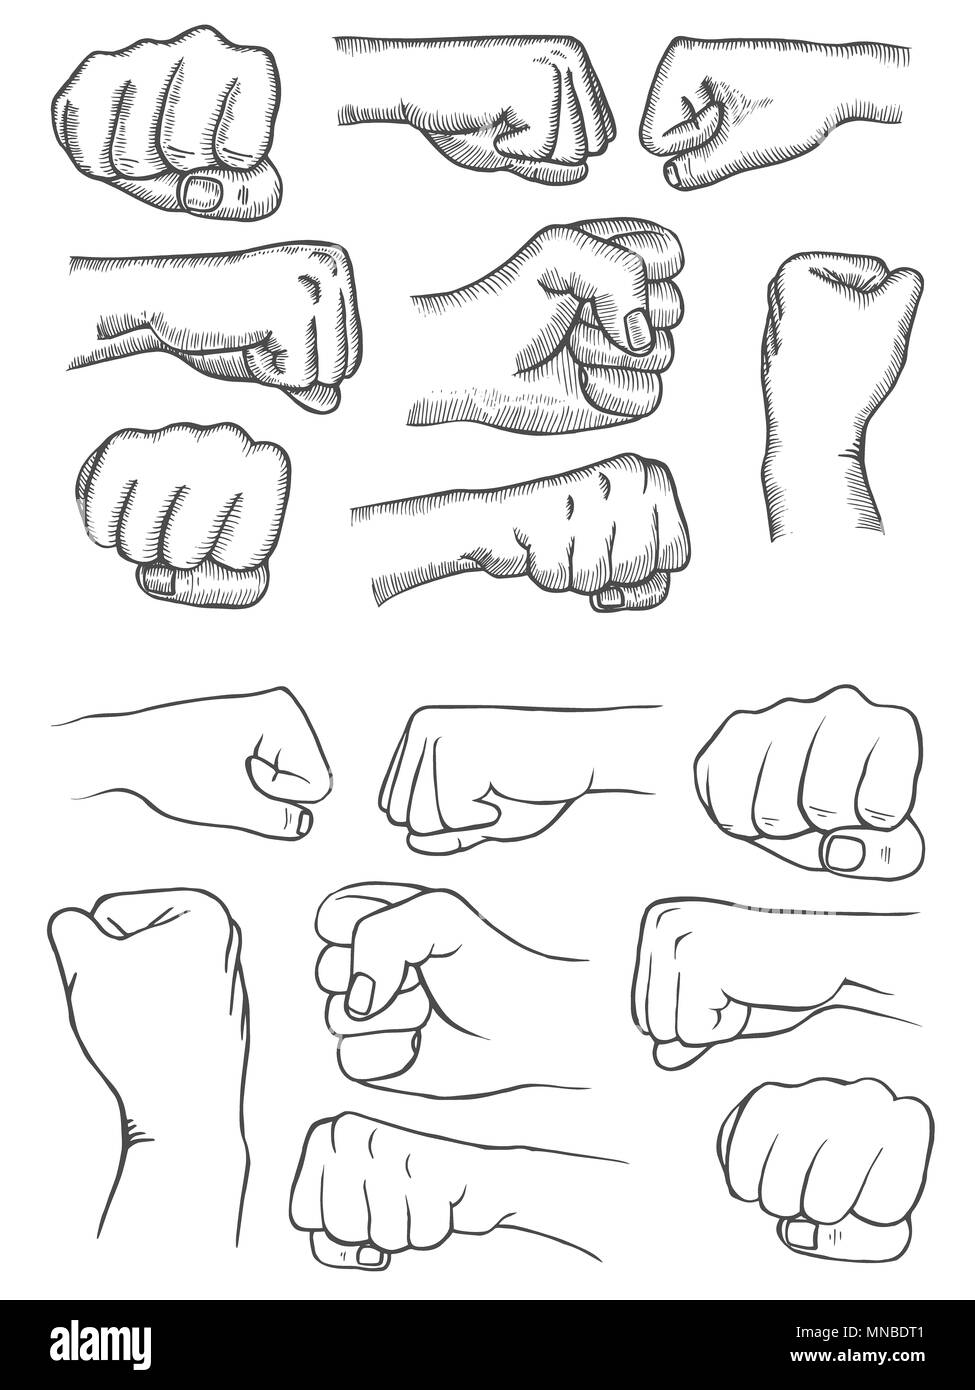 Set of fists in vintage style isolated on white background in the style of antique